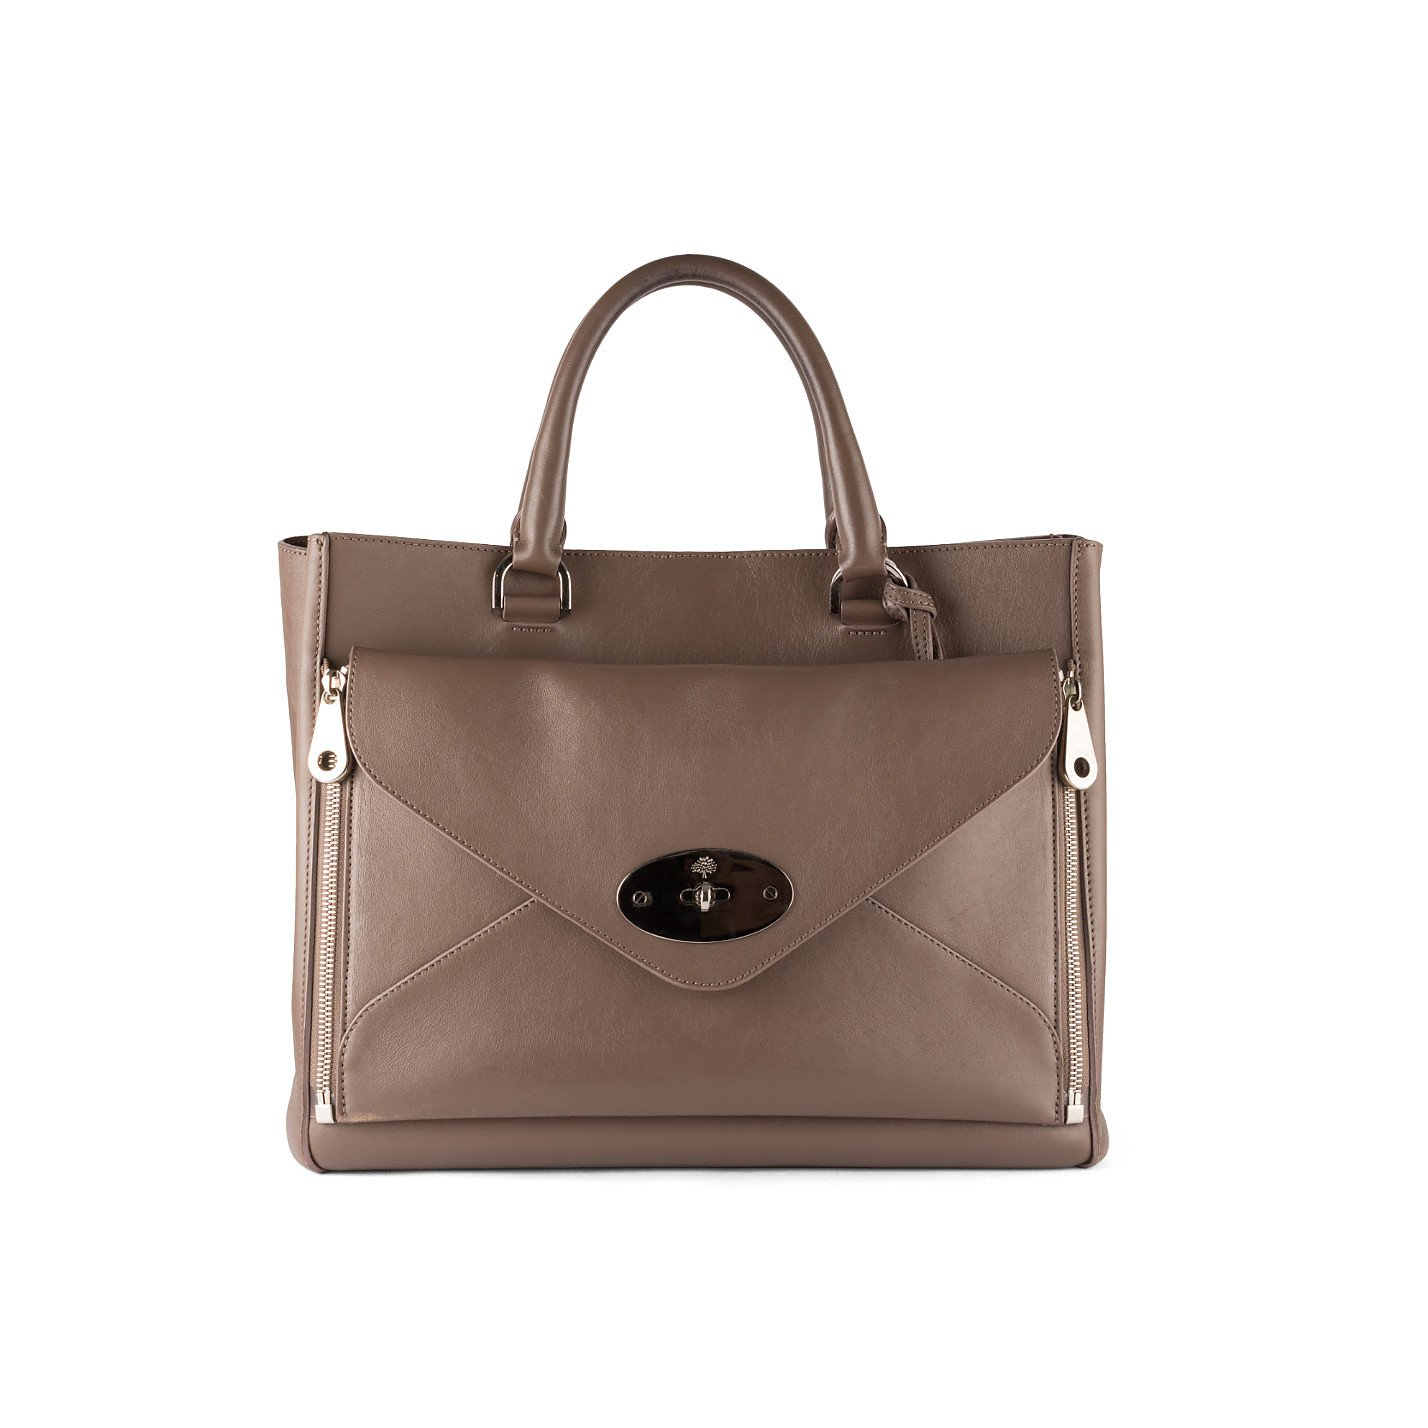 Mulberry Zipper Detail Leather Bag with Detachable Clutch